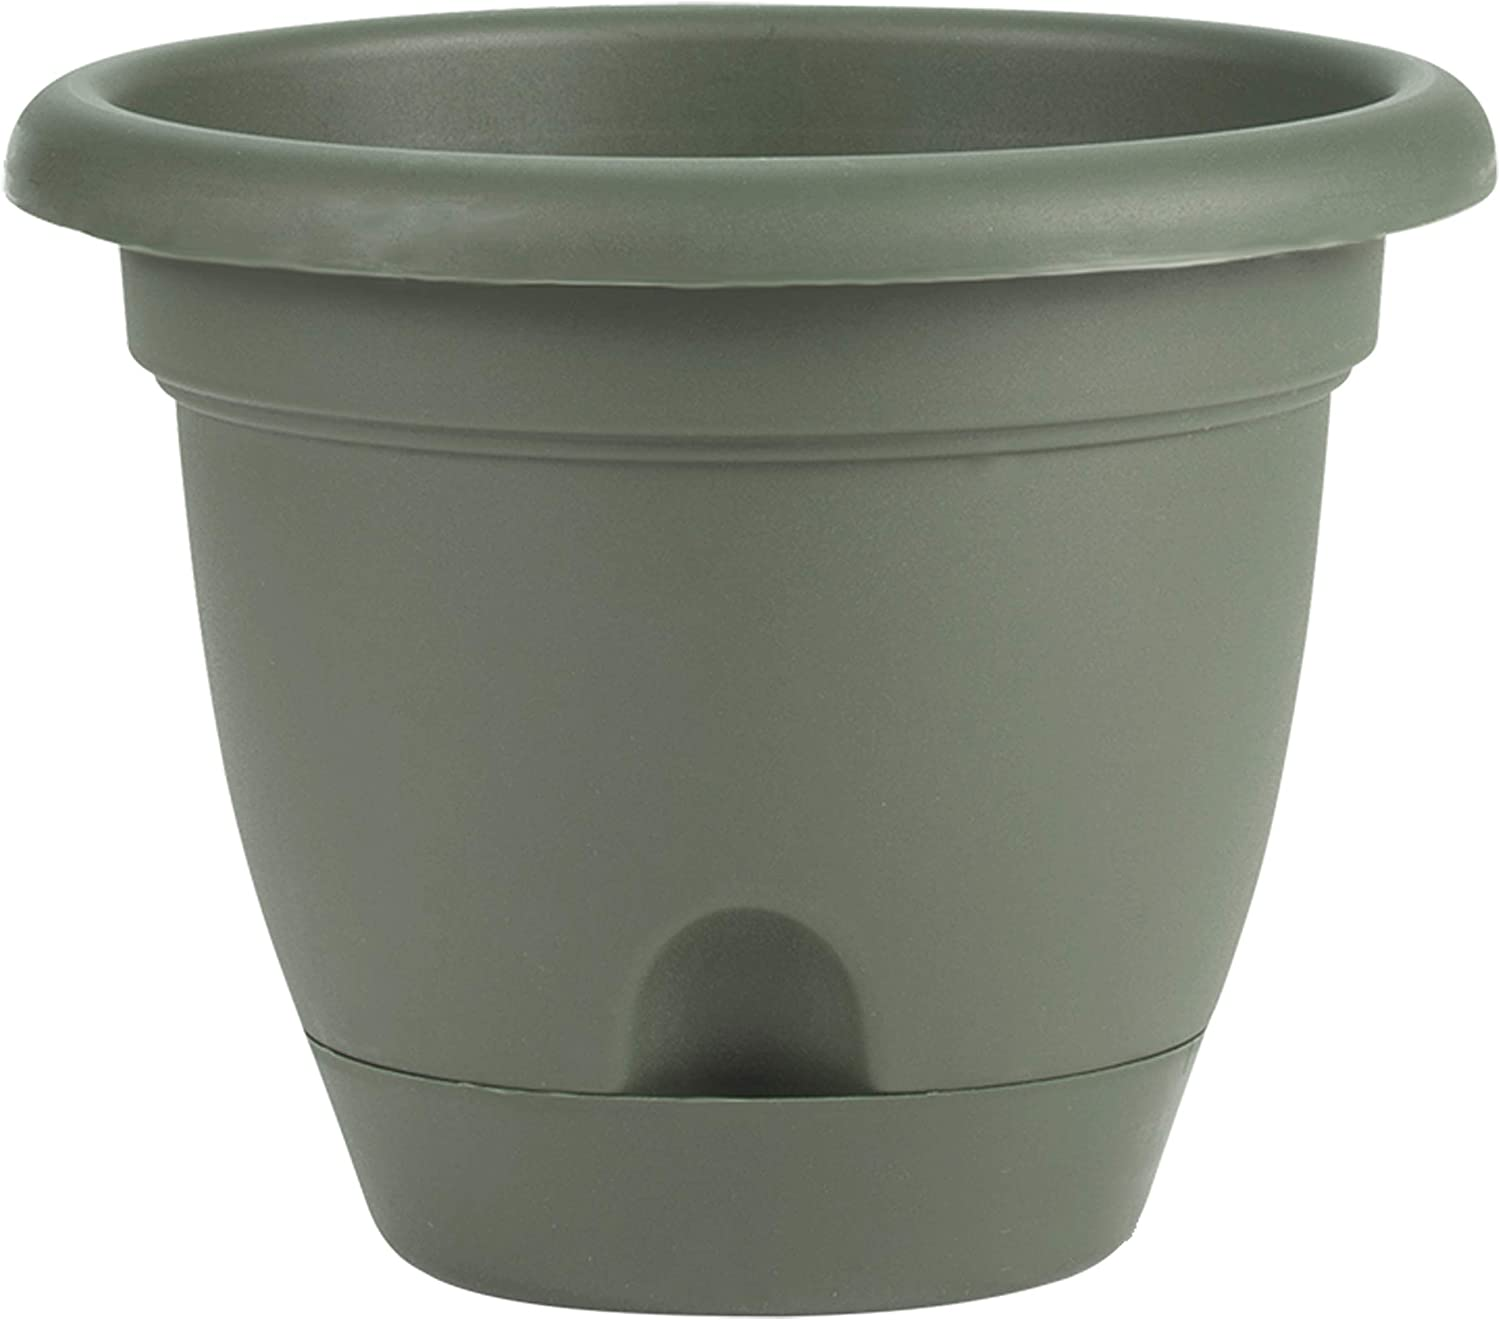 Bloem LP1442 Lucca Planter, 14-Inch, Living Green